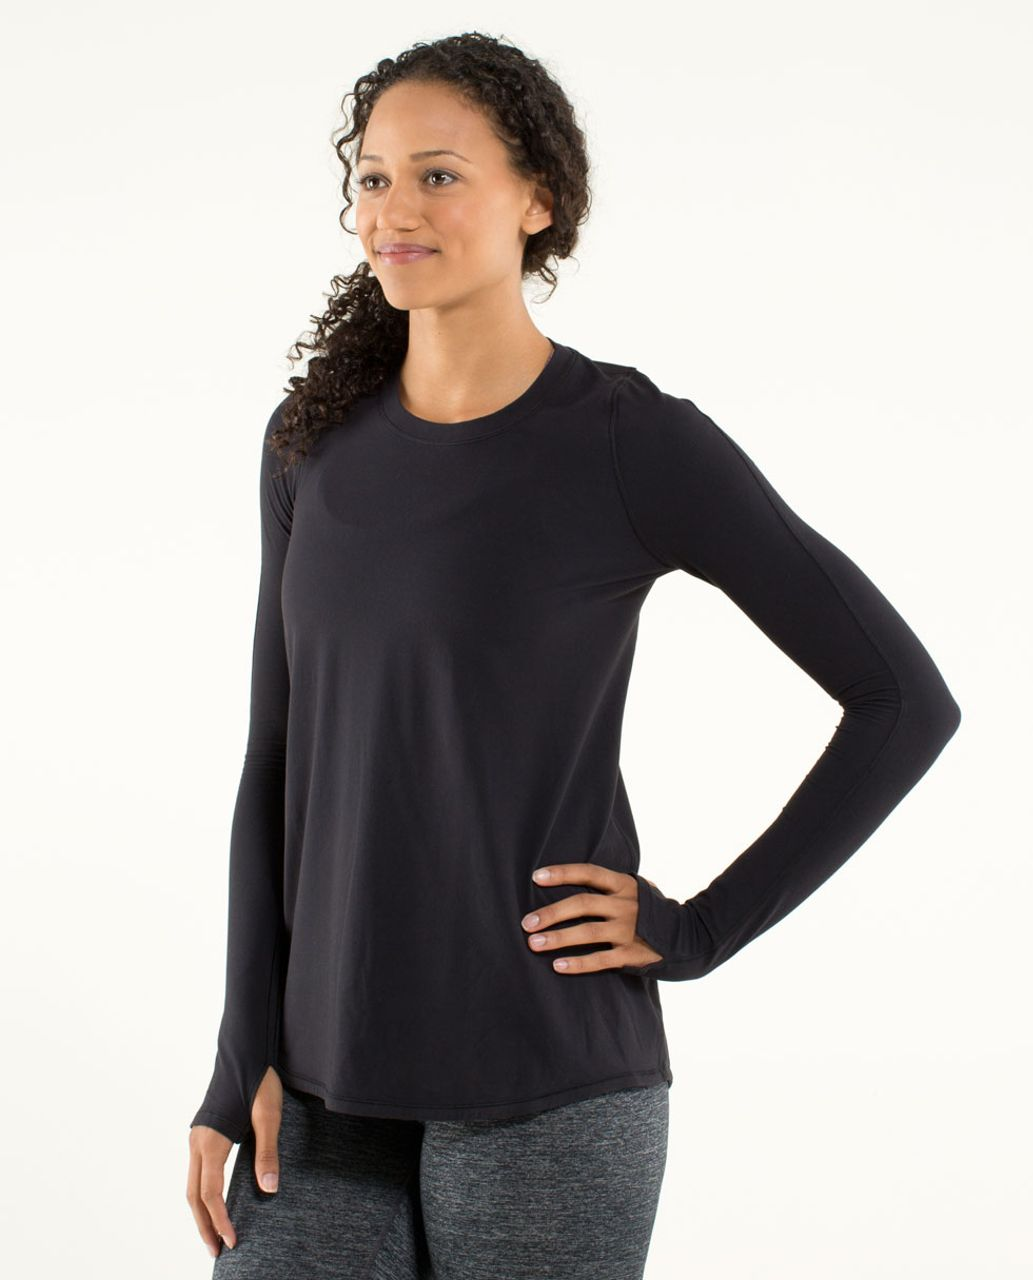 Lululemon Tuck and Flow Long Sleeve - Black